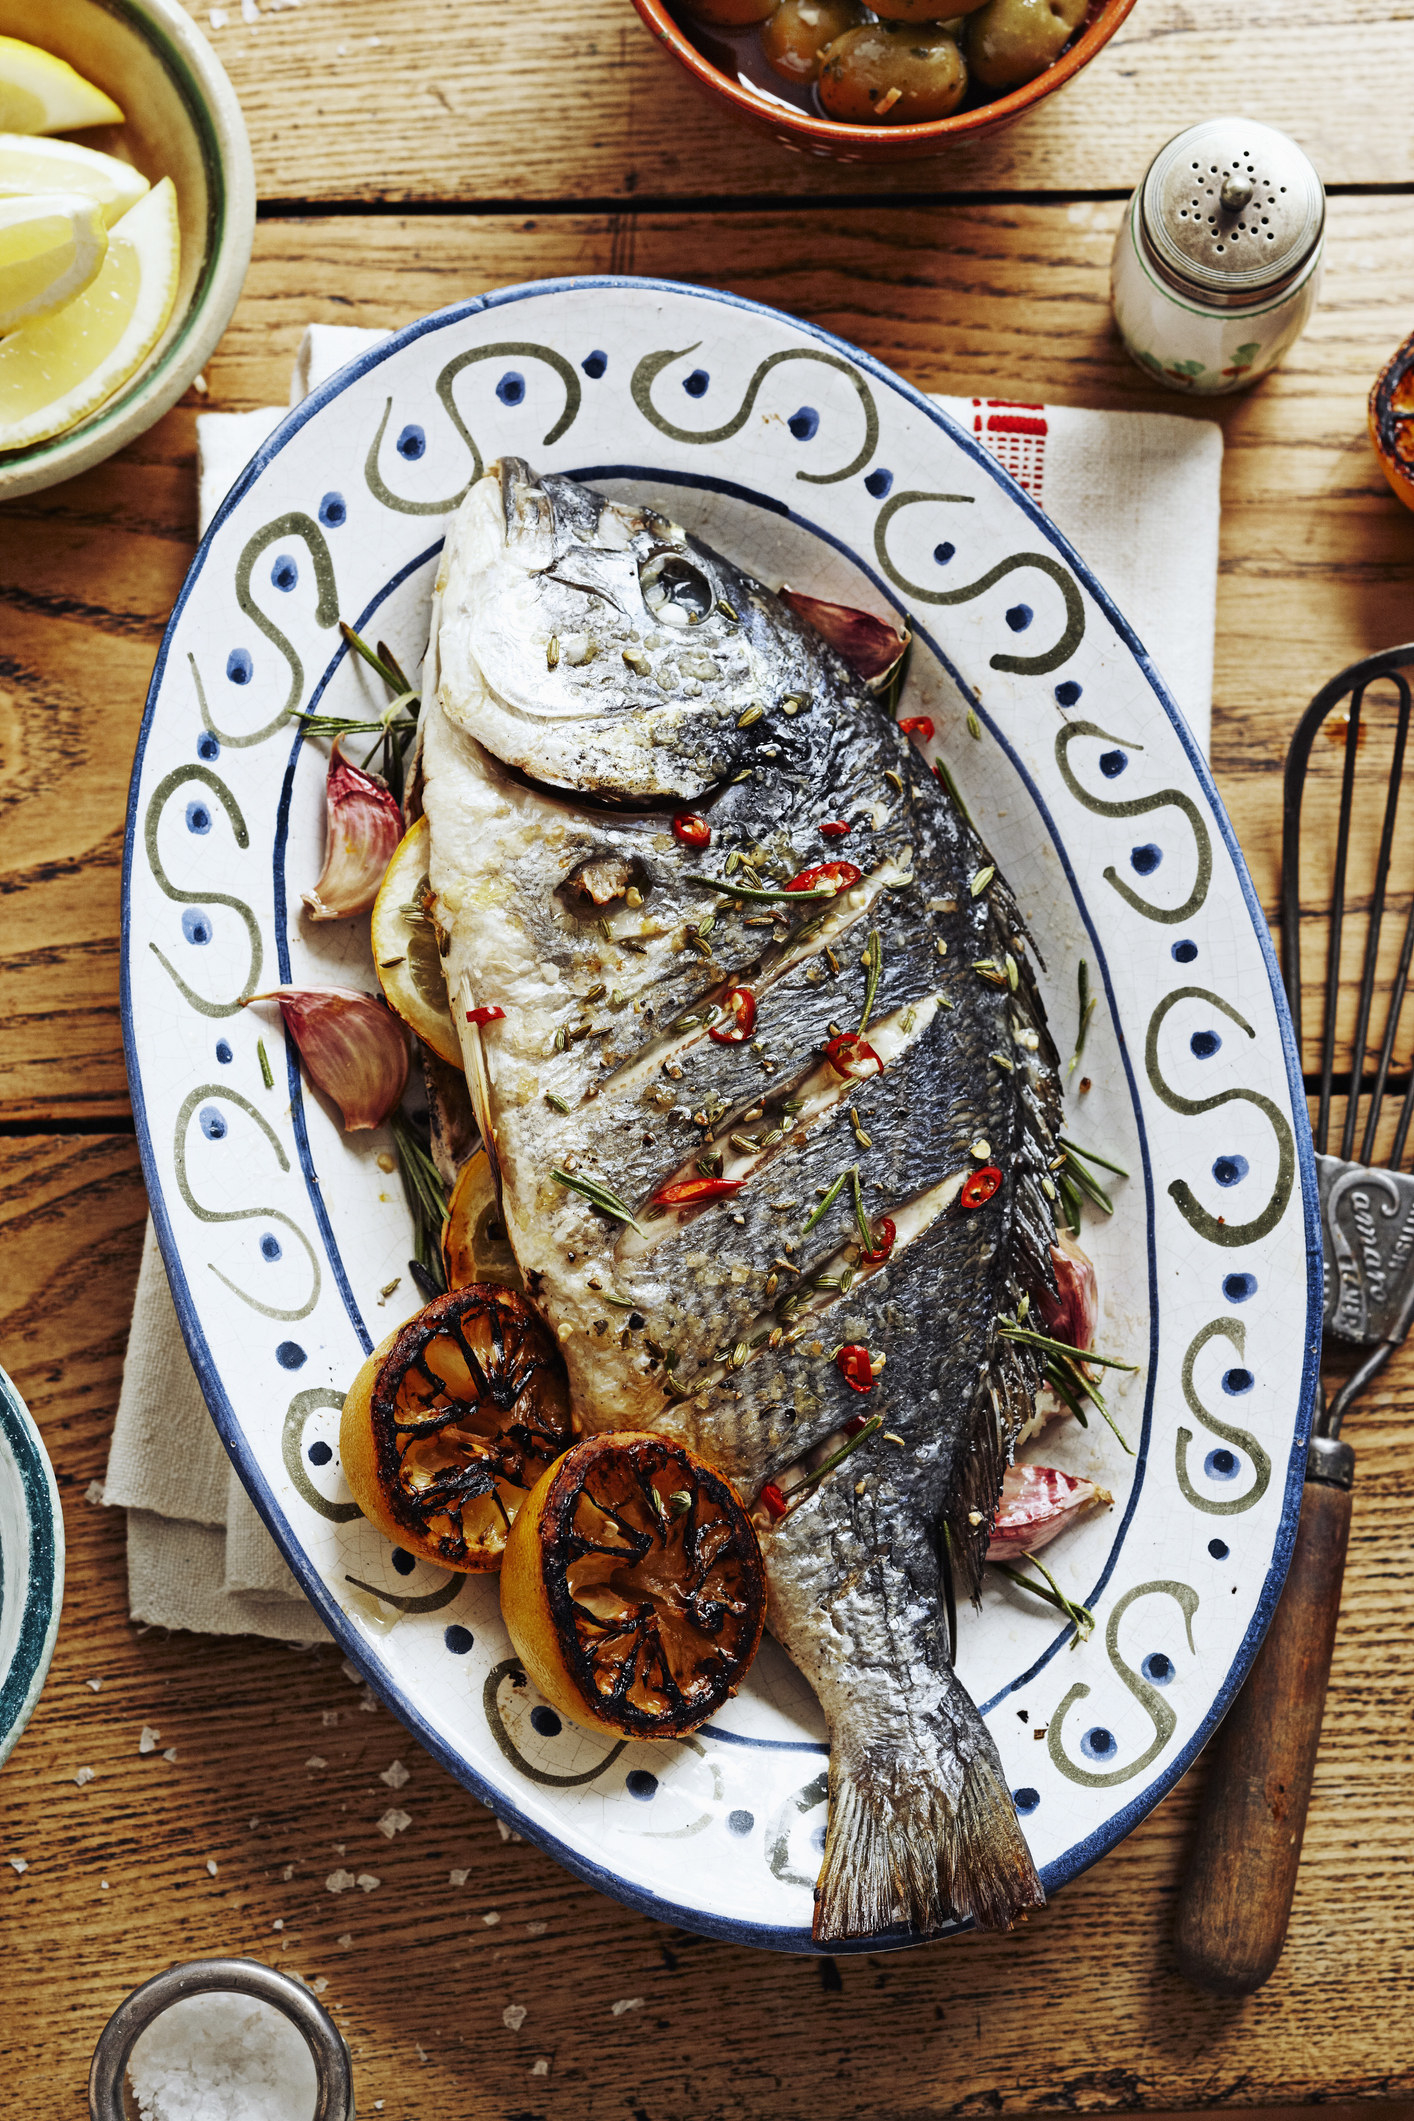 A whole roasted fish on a plate.